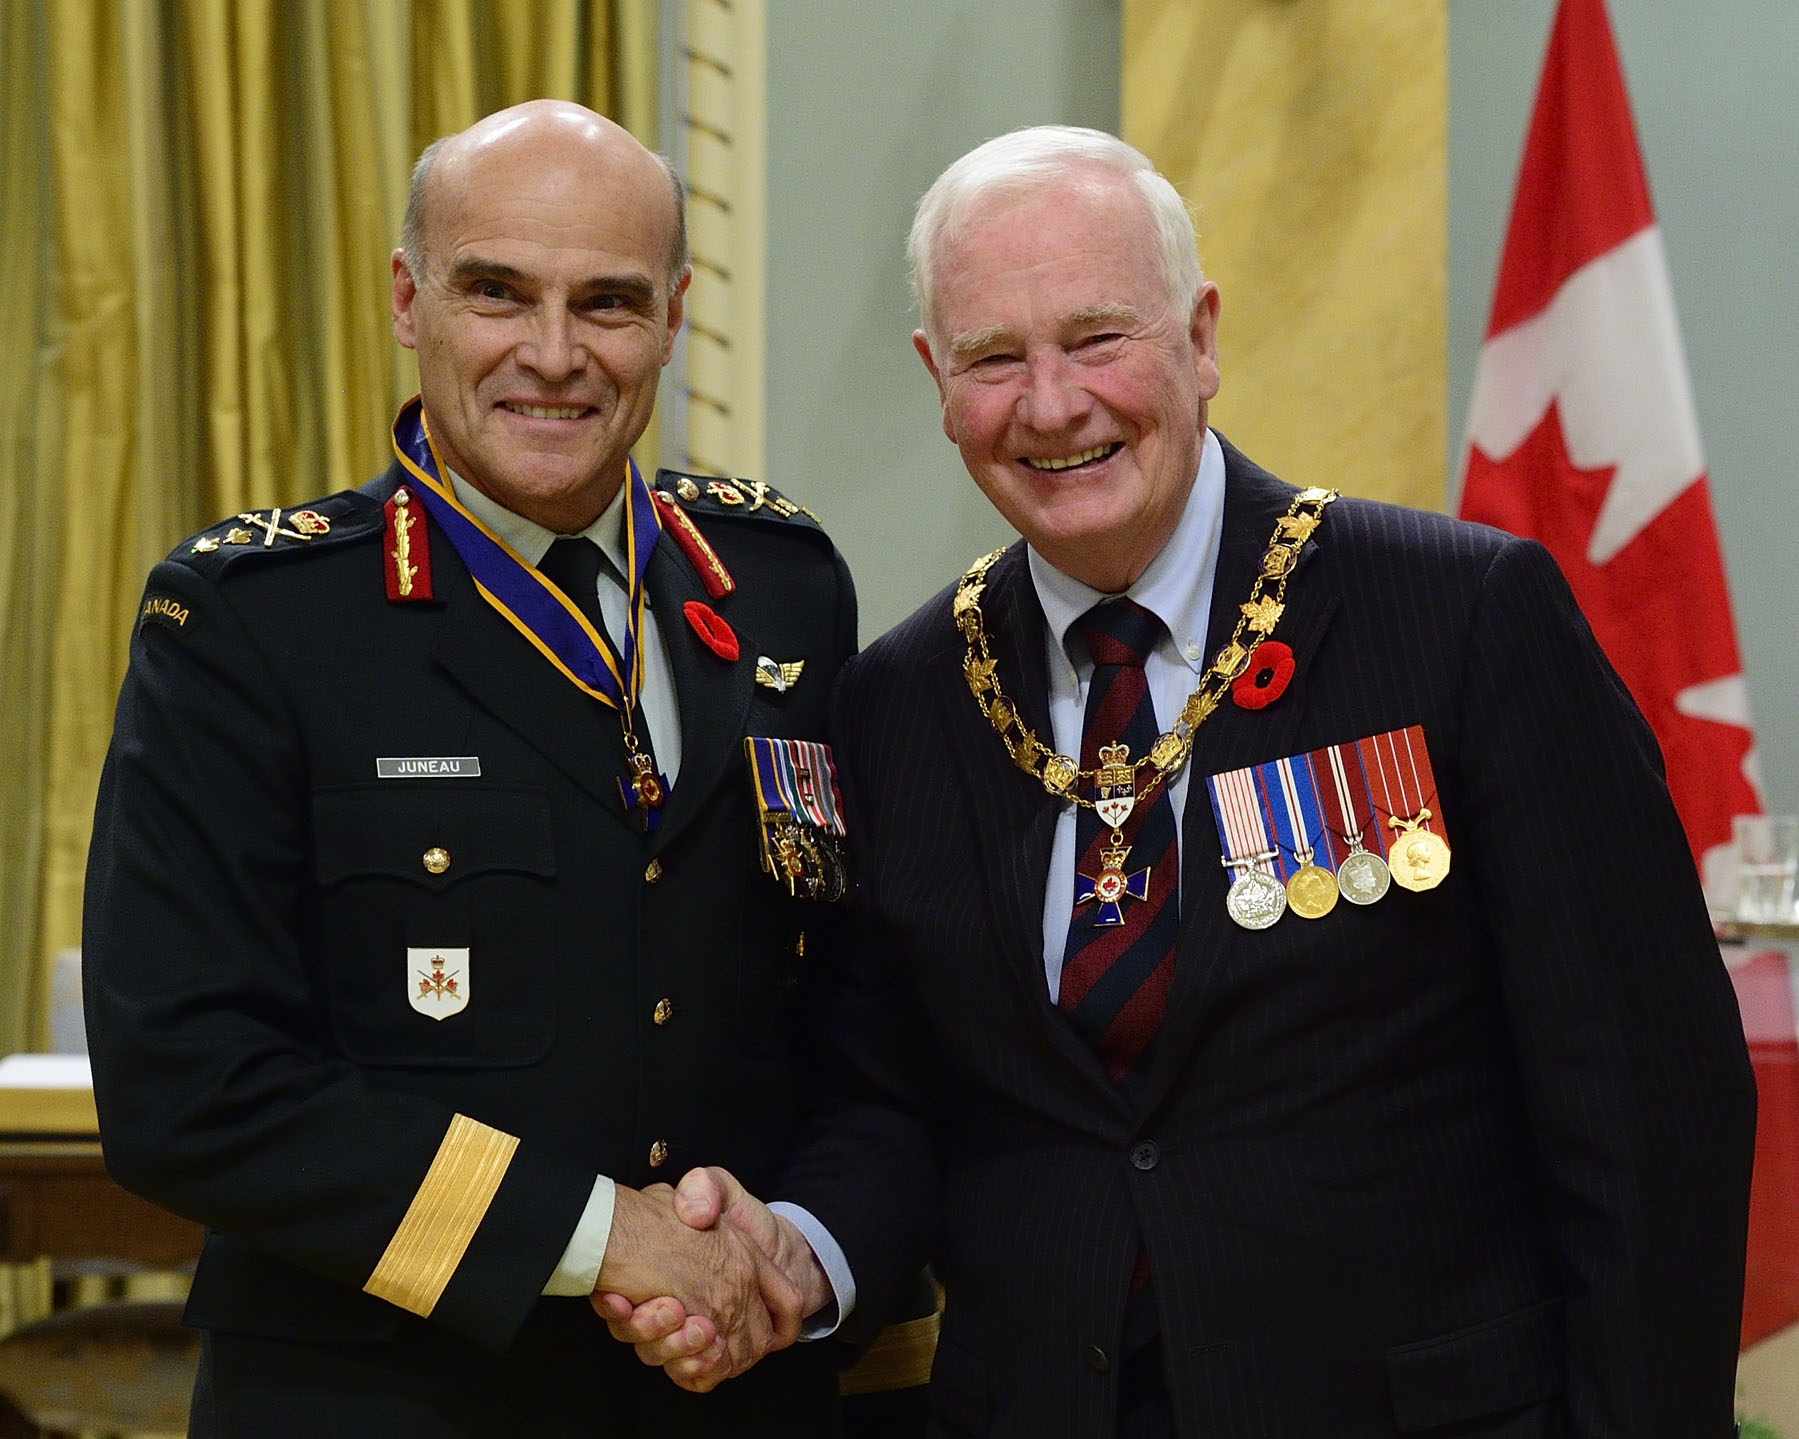 His Excellency presented the Order of Military Merit at the Commander level (C.M.M.) to Major-General Christian Juneau, C.M.M., M.S.M., C.D., Office of the Chief of the Army Staff